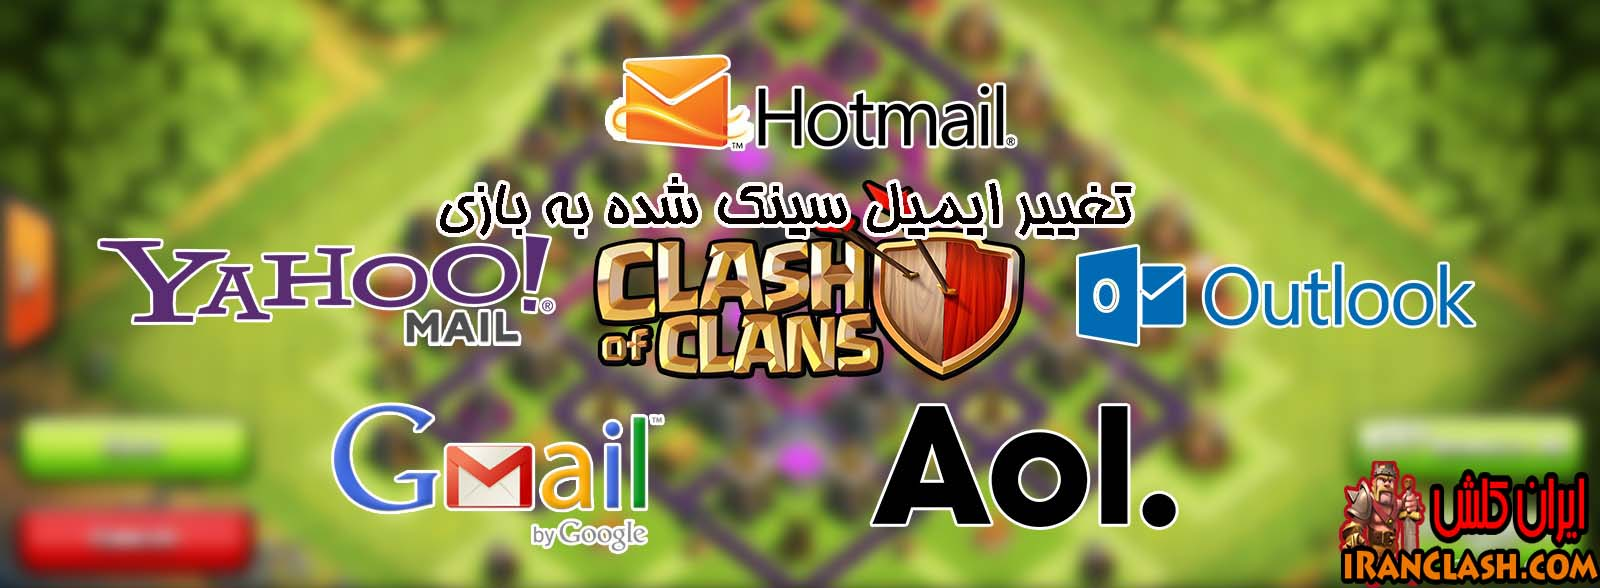 change-clash-of-clans-emai2l